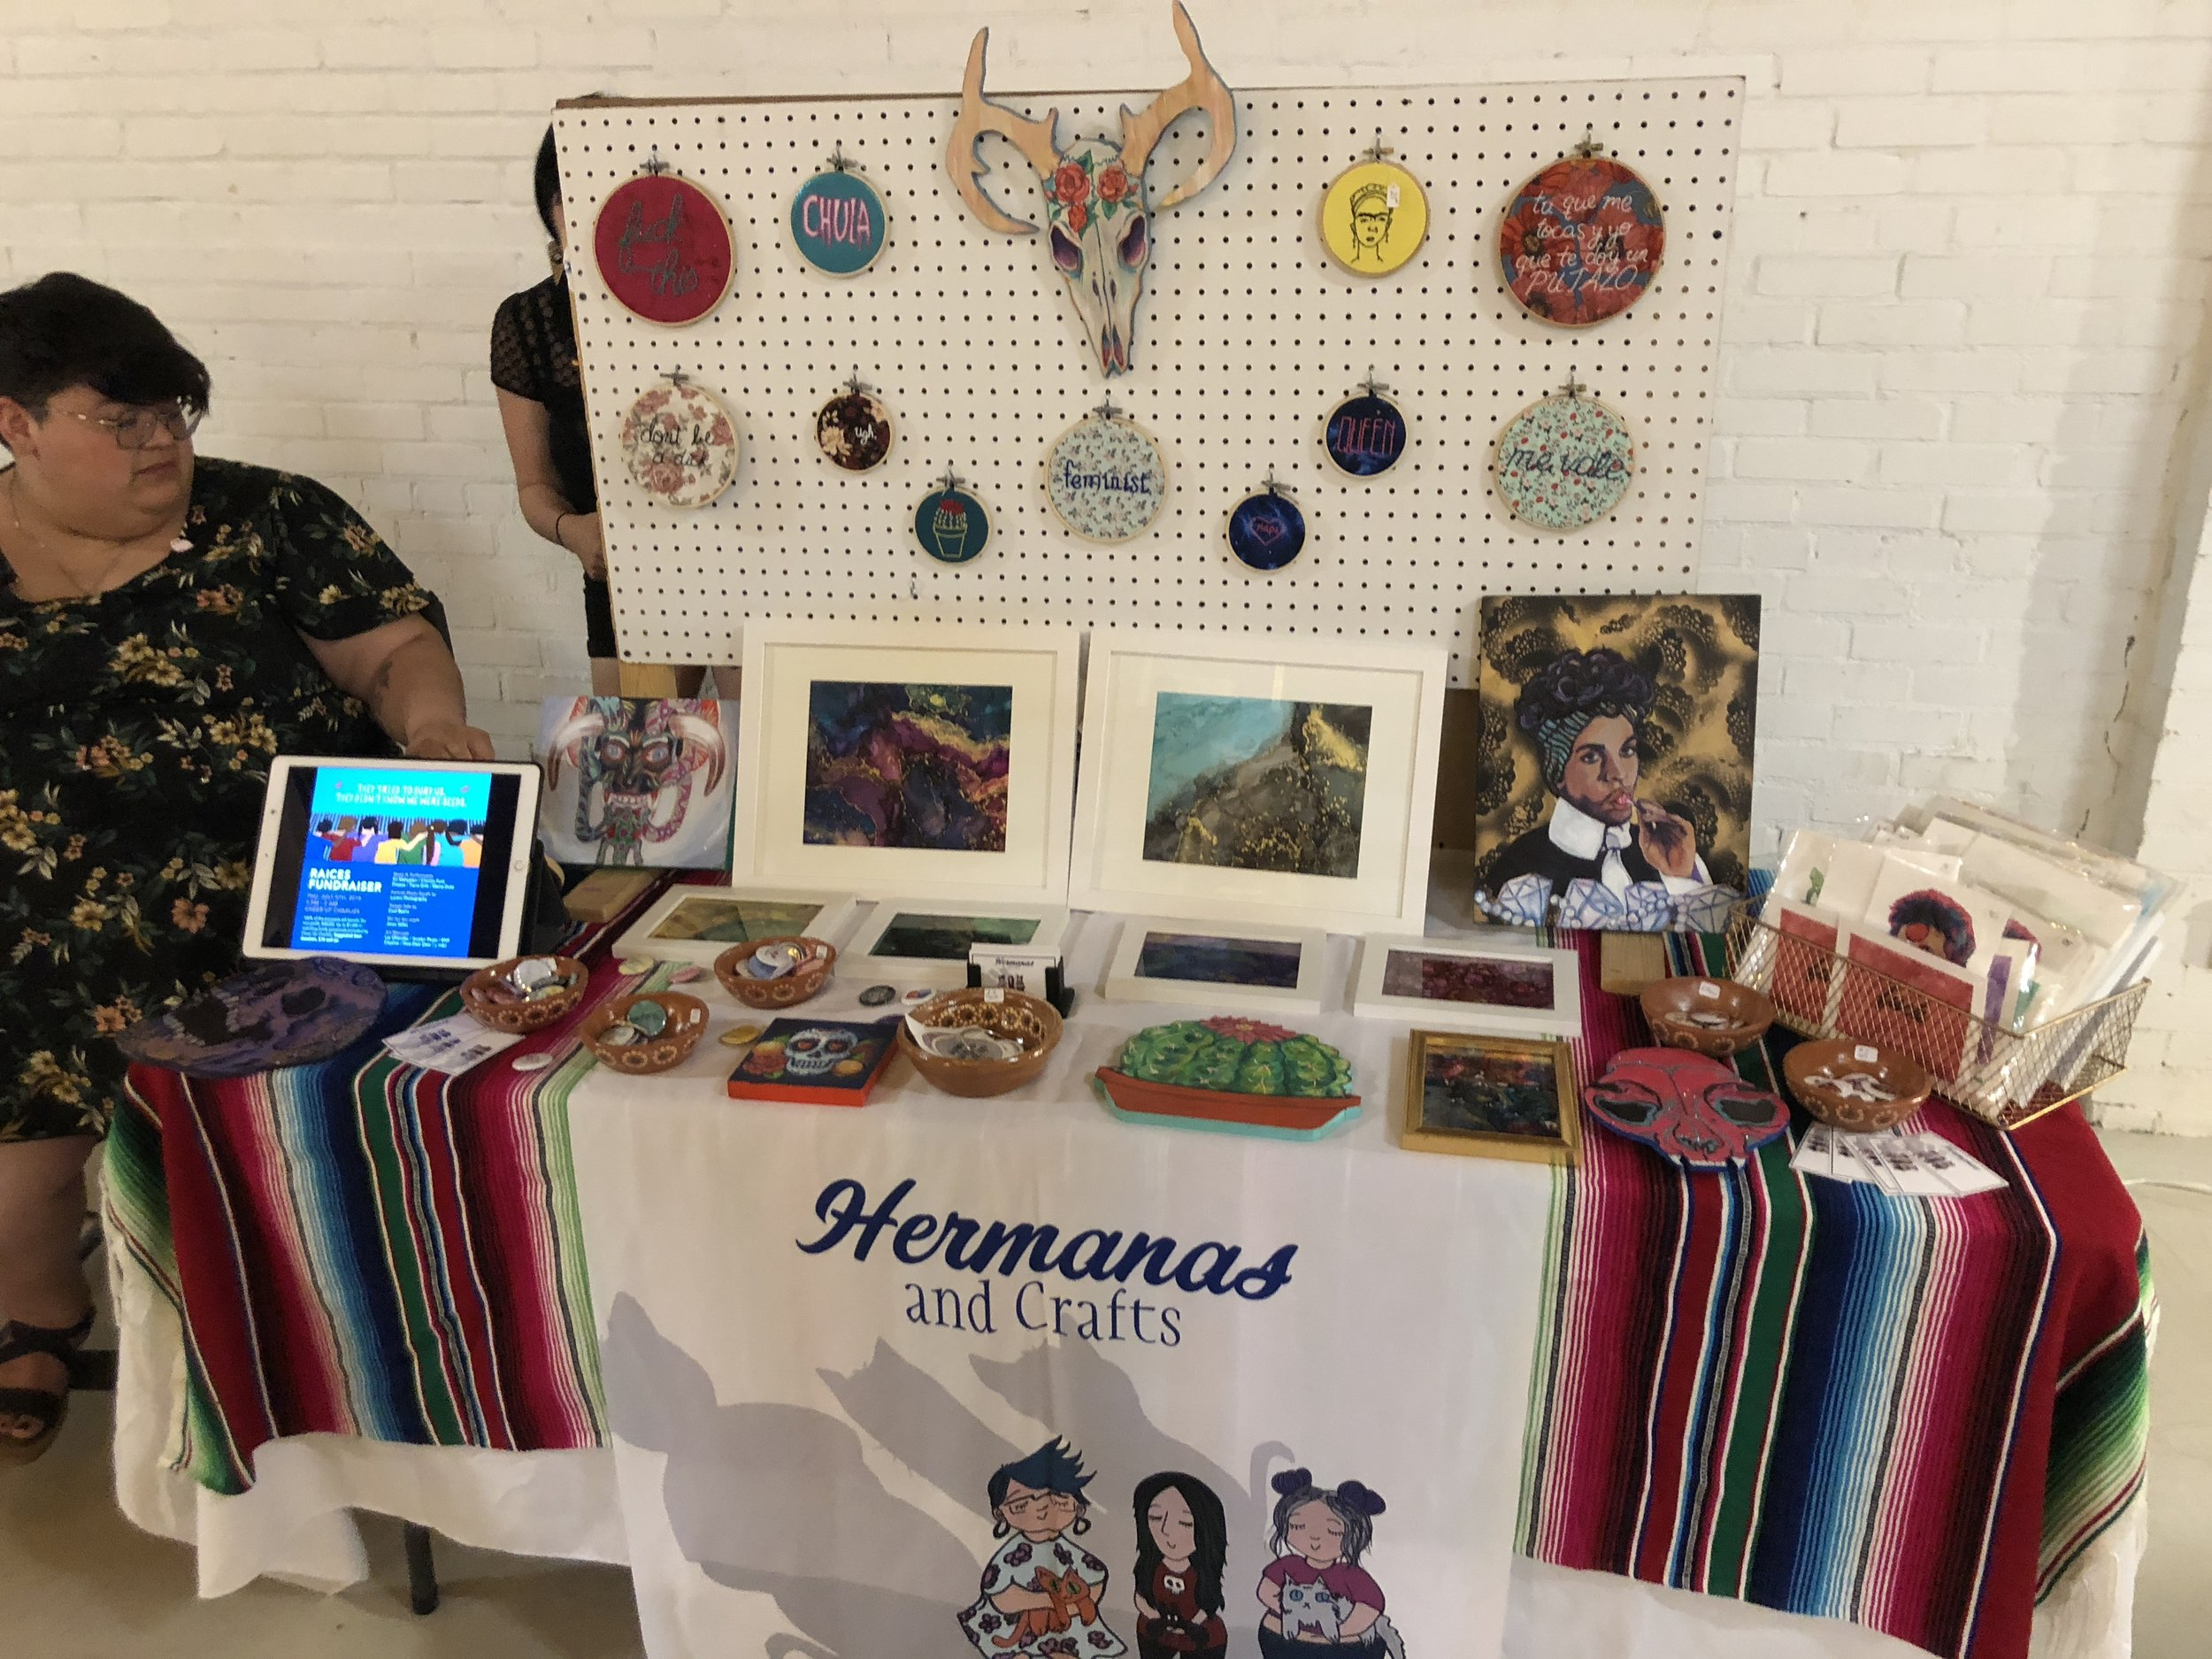 Hermanas & Crafts